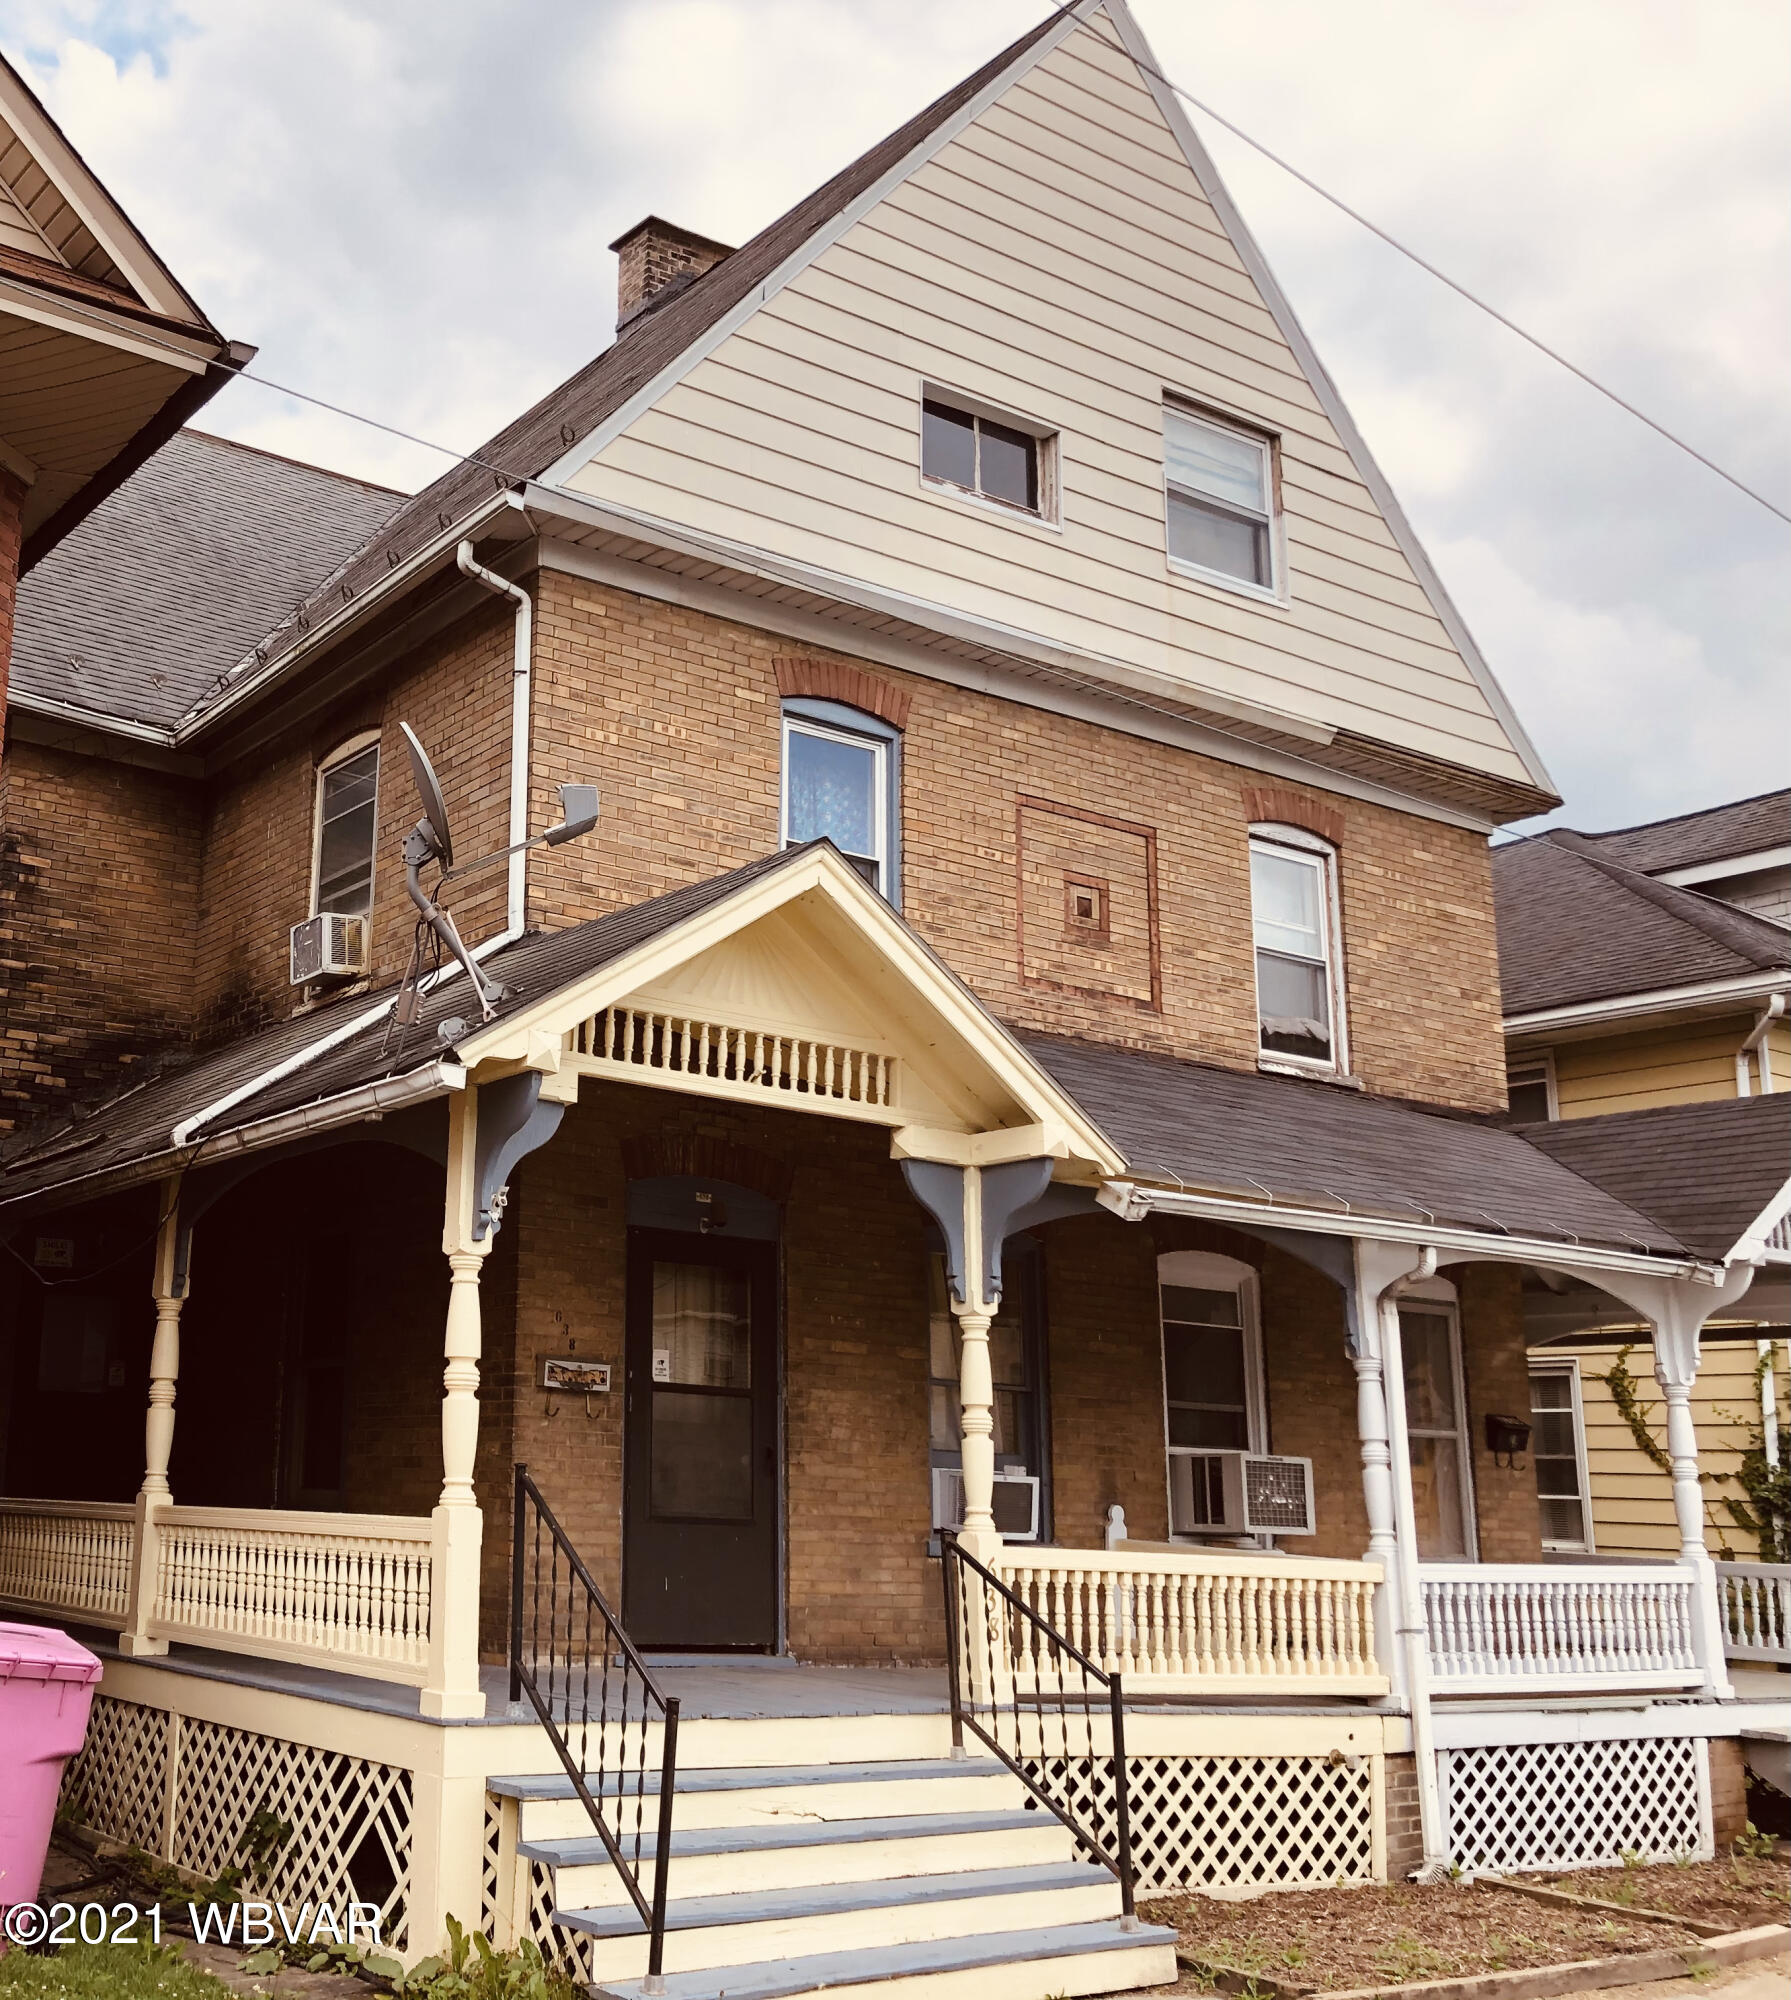 638 5TH AVENUE, Williamsport, PA 17701, 3 Bedrooms Bedrooms, ,1 BathroomBathrooms,Residential,For sale,5TH,WB-92768